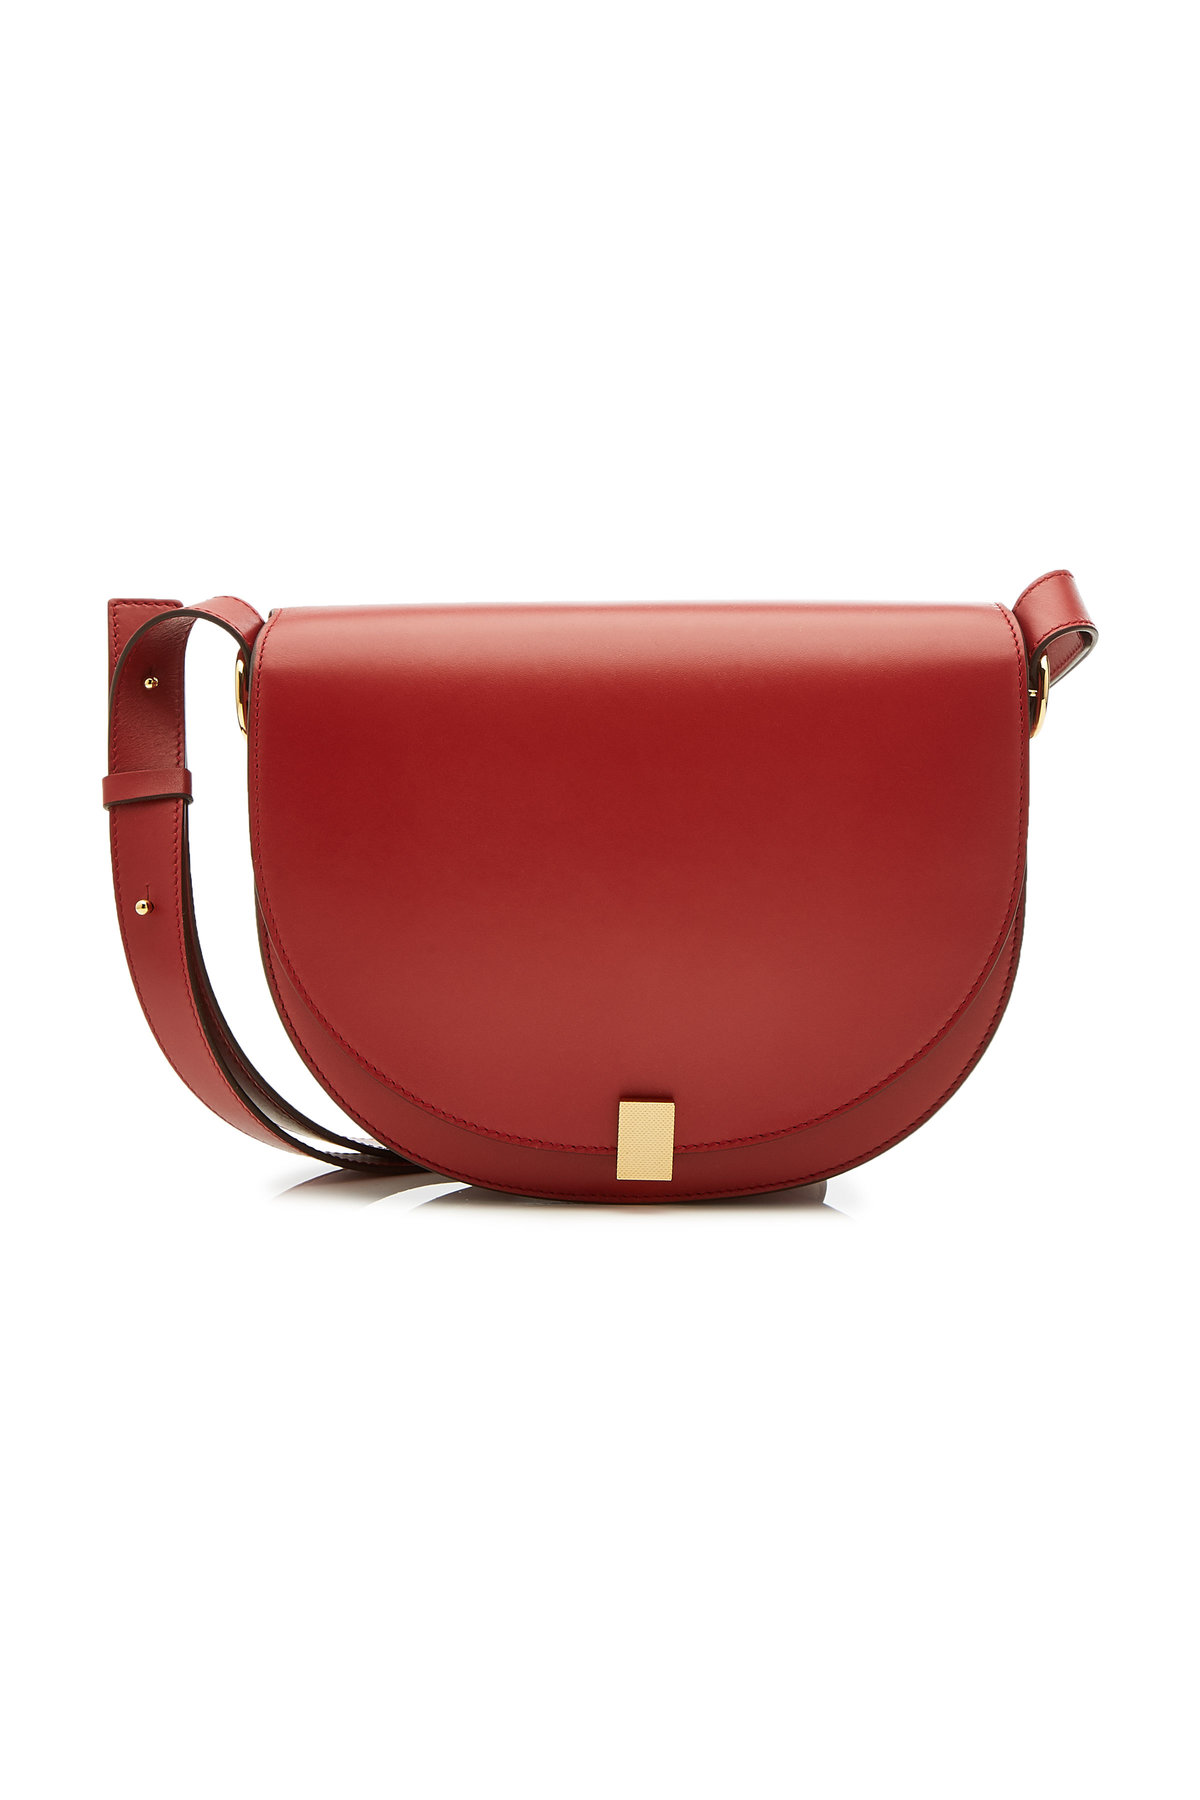 Half Moon Leather Shoulder Bag | VICTORIA BECKHAM